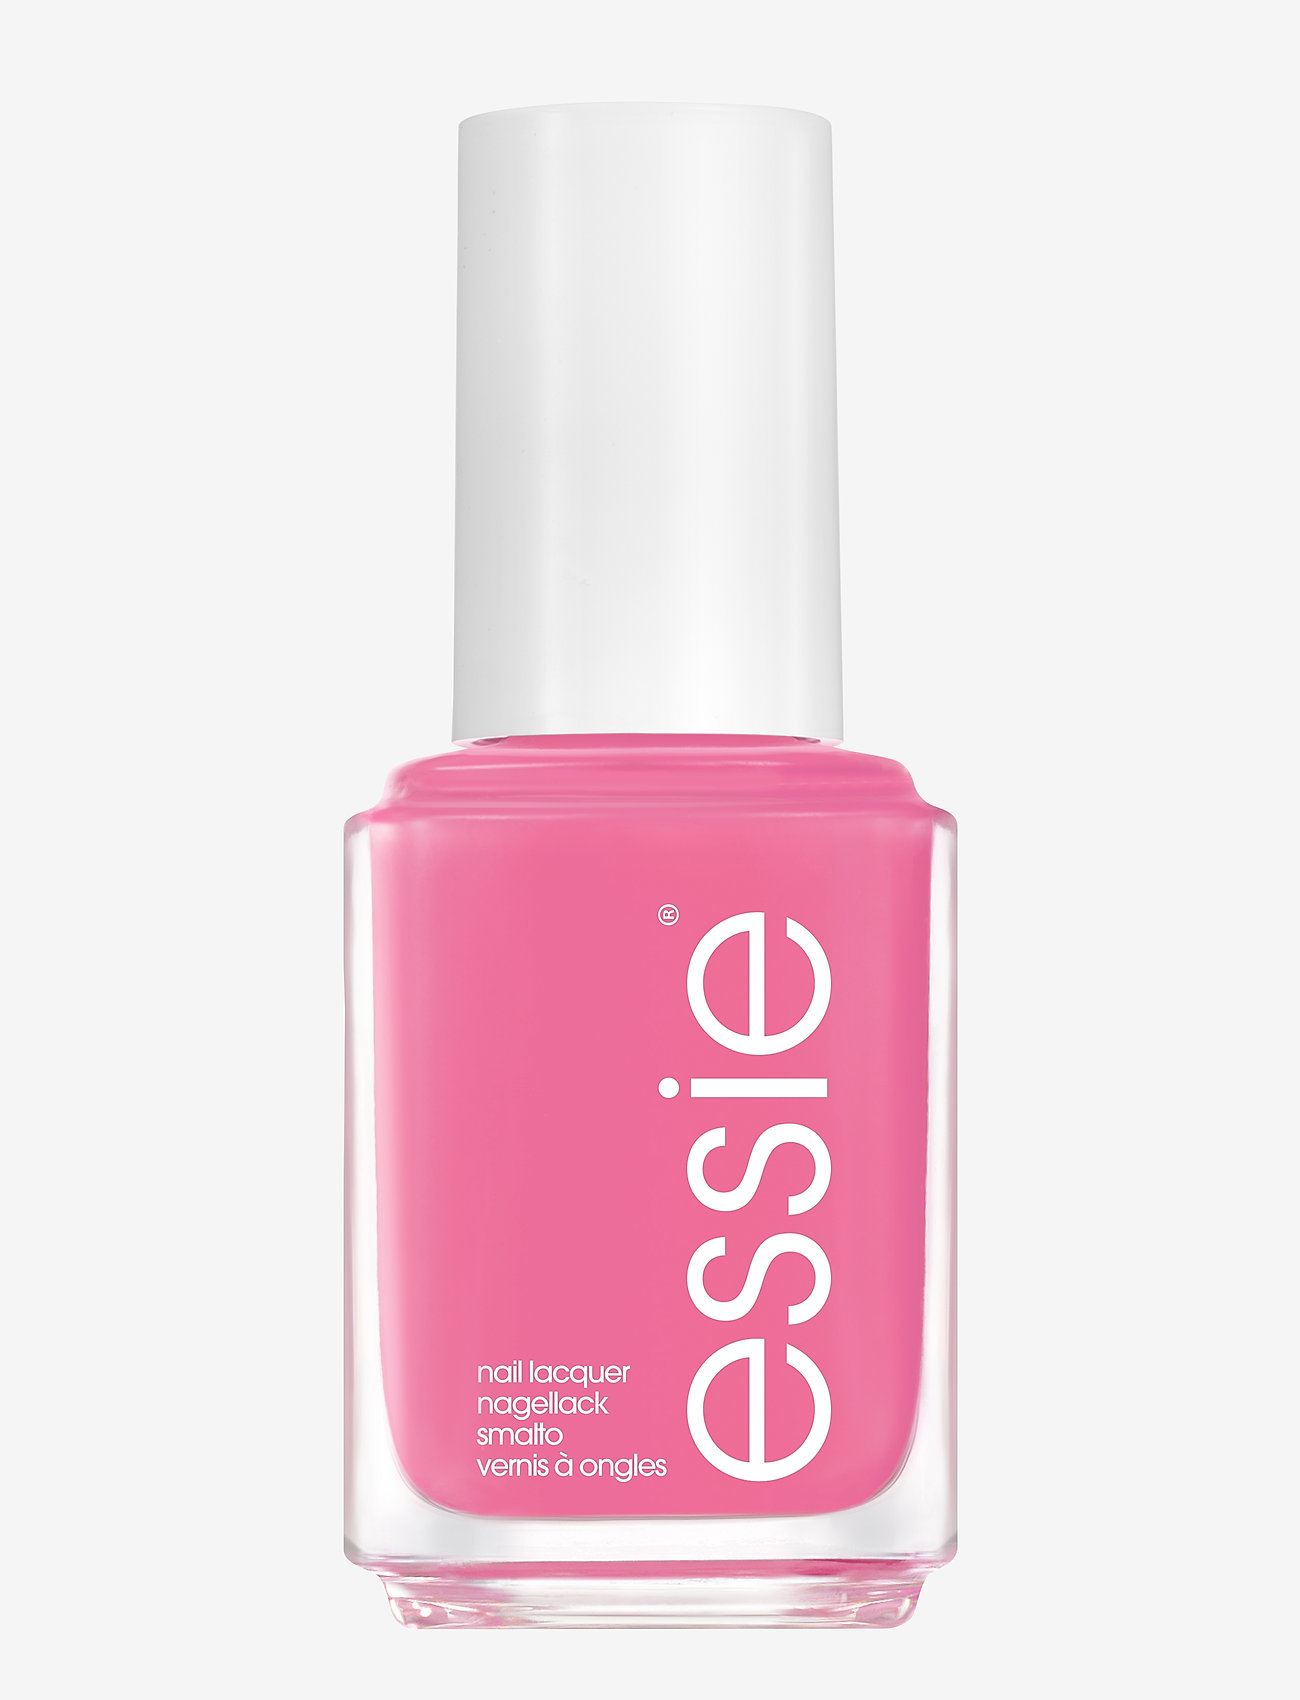 Essie - midsummer collection - neglelak - blossoms n'besties 720 - 0